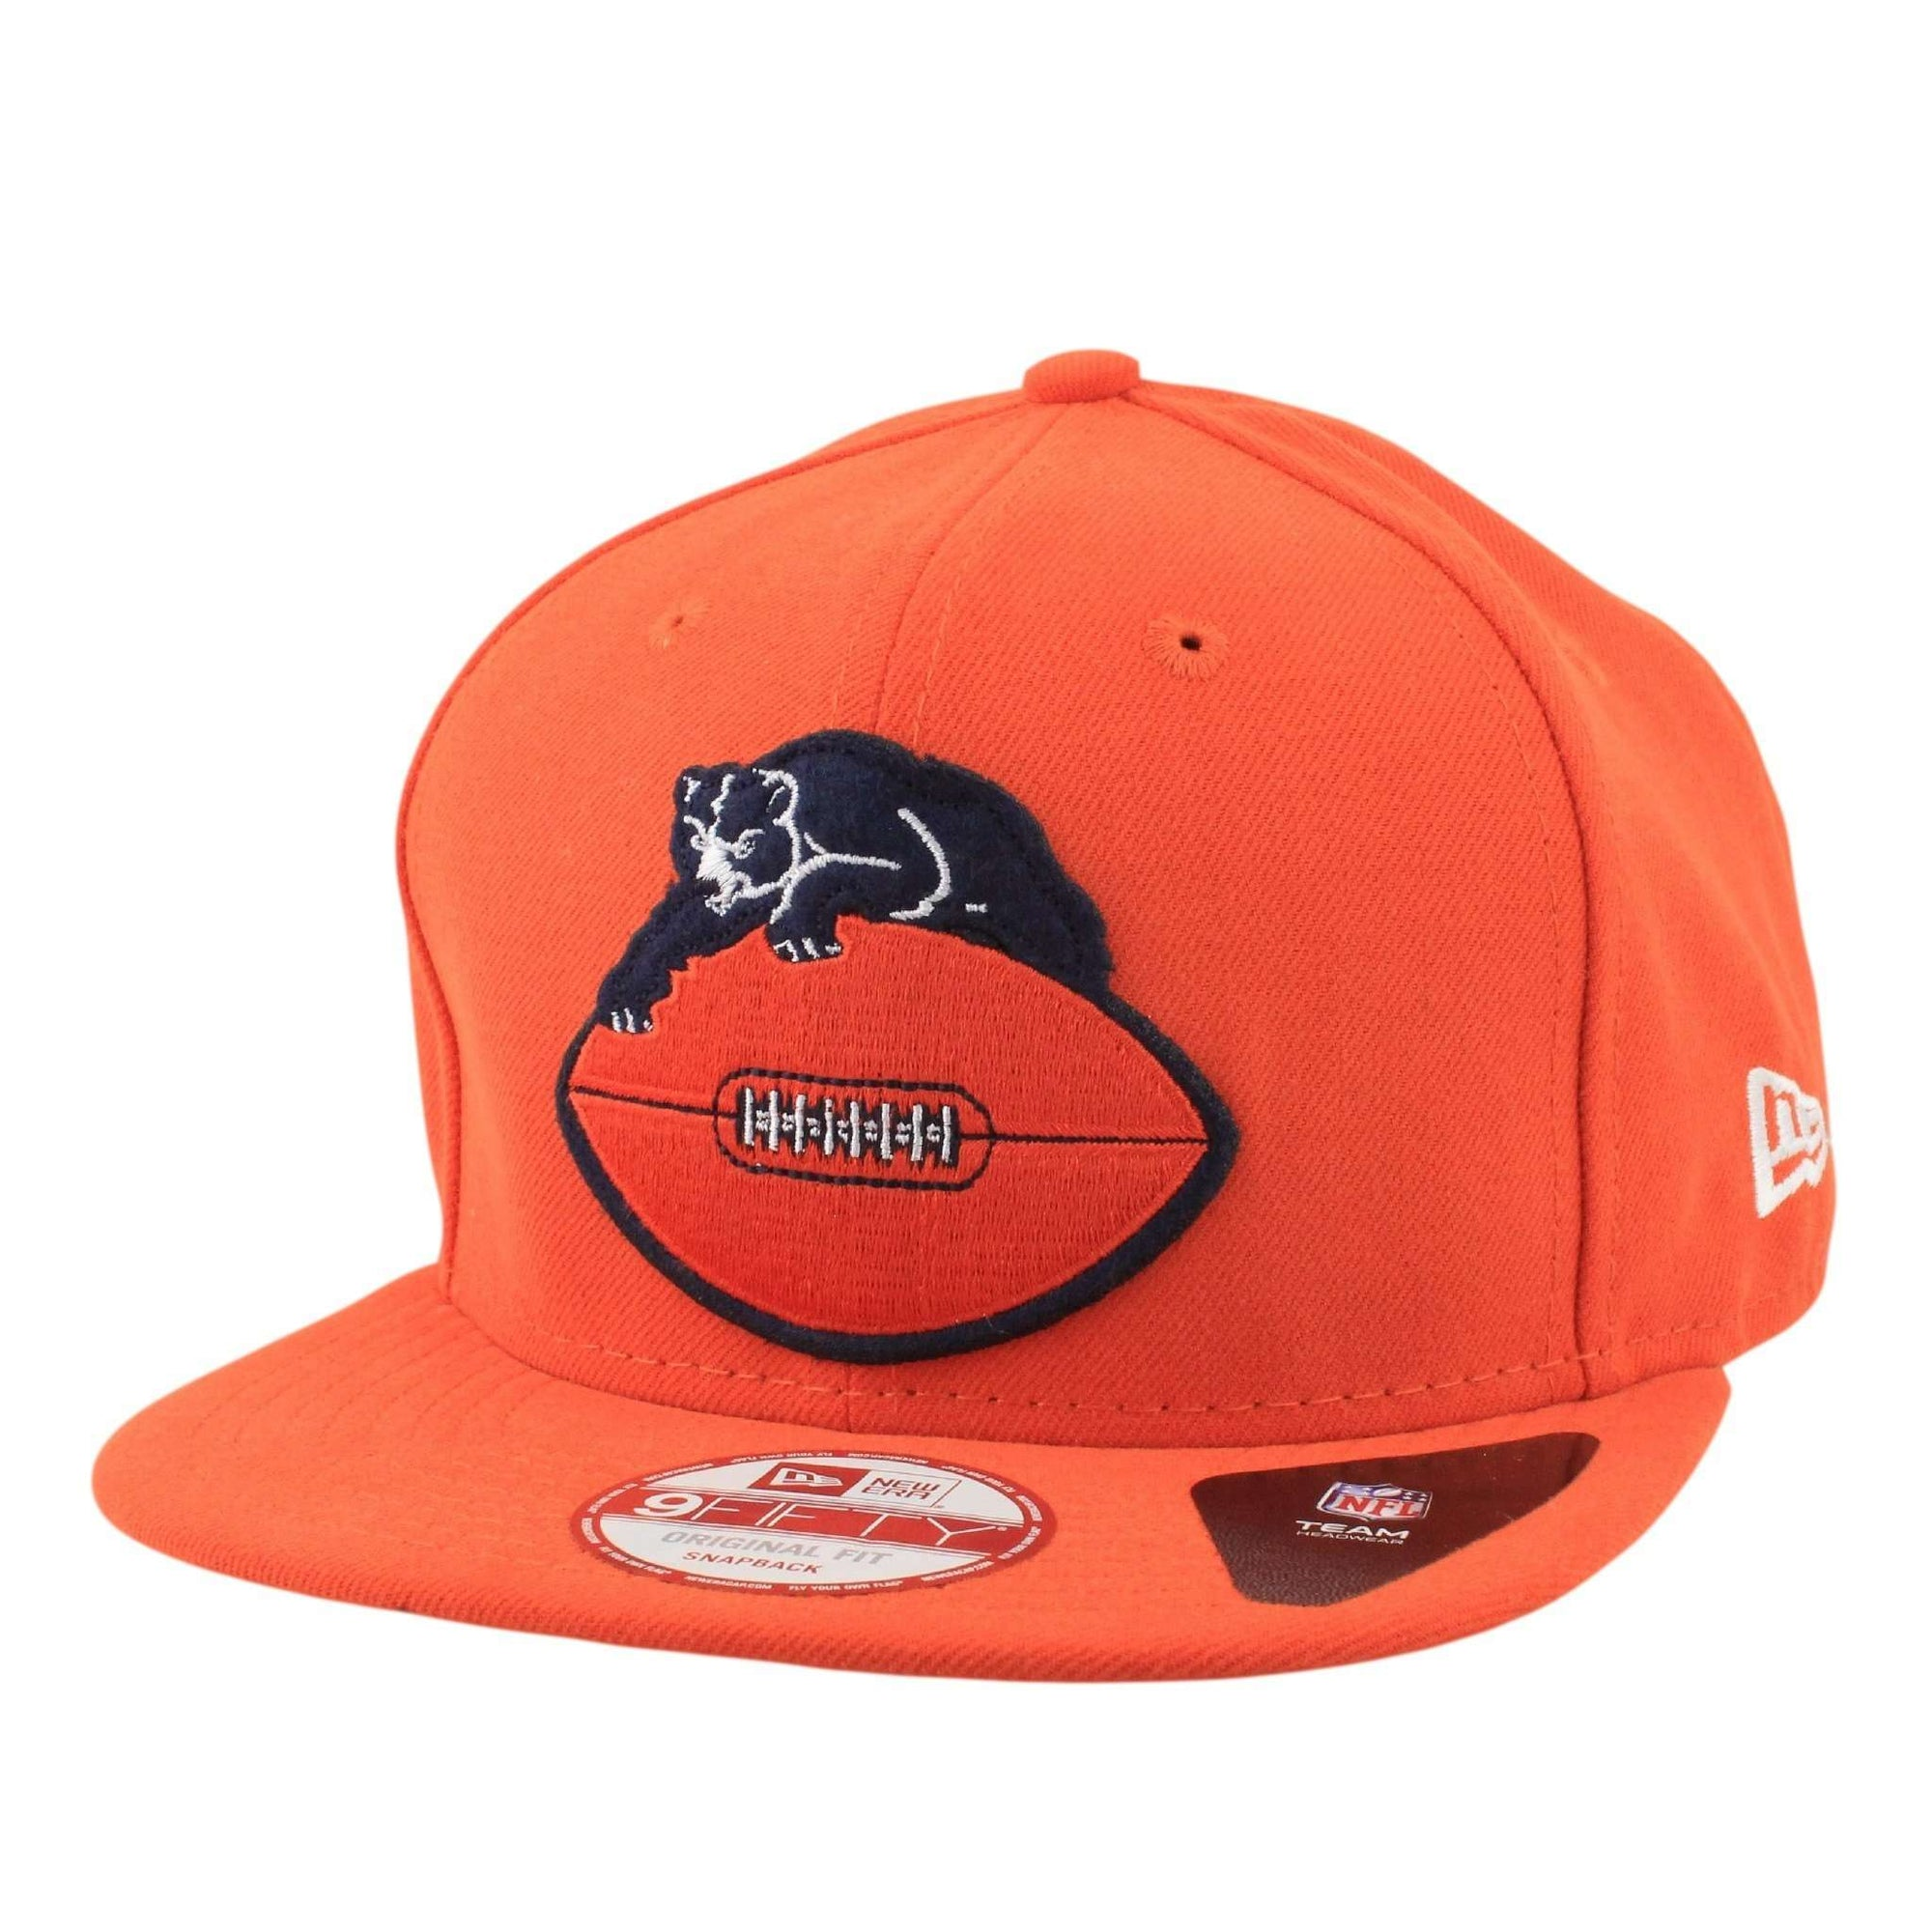 New Era Chicago Bears Retro Logo 46-73 Orange Orange Snapback 17c0fc7b2045